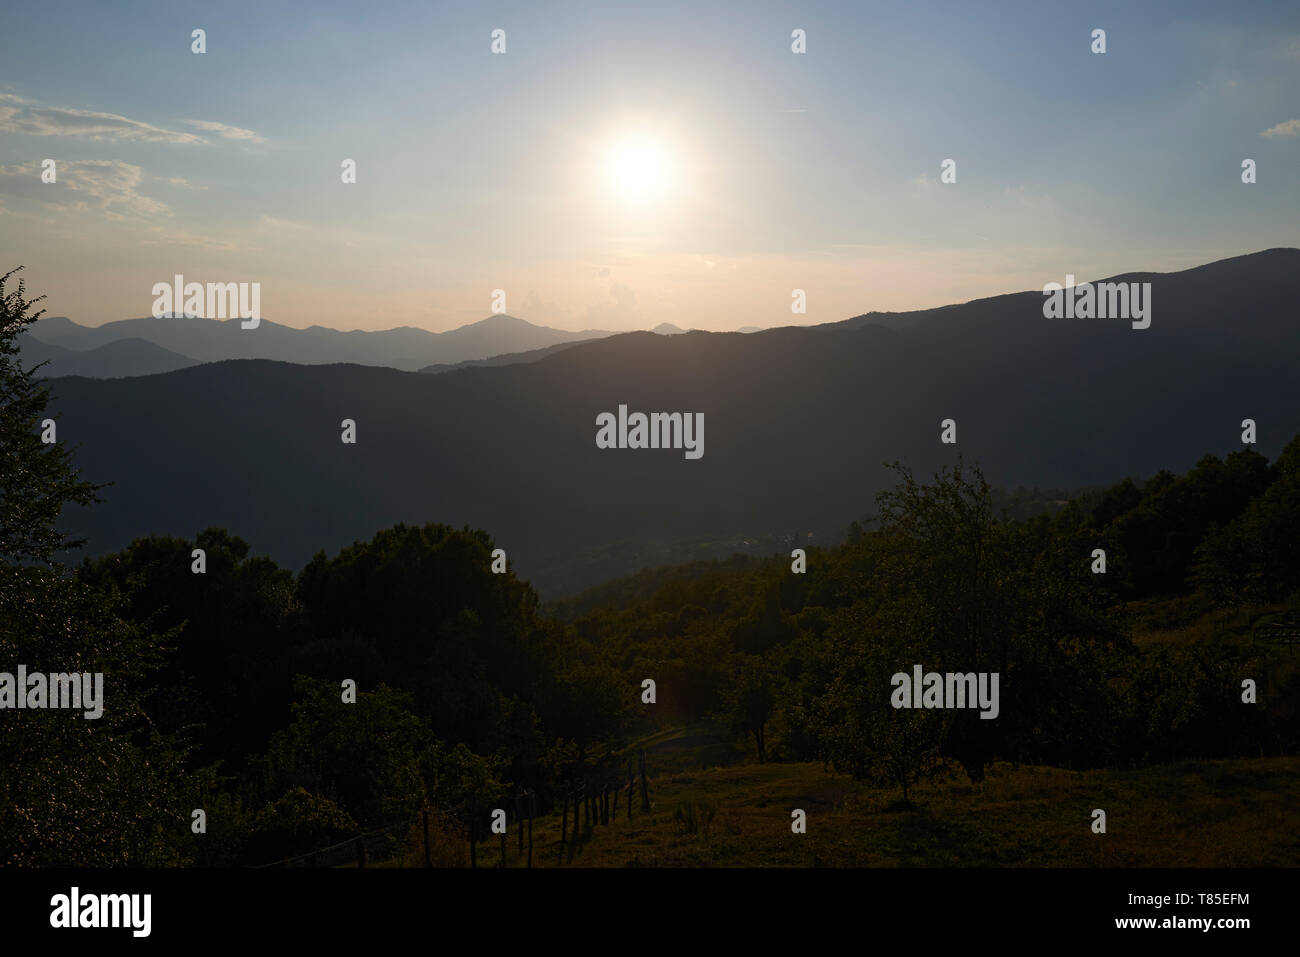 Mountains at La Spezia region in the North of Italy - Stock Image